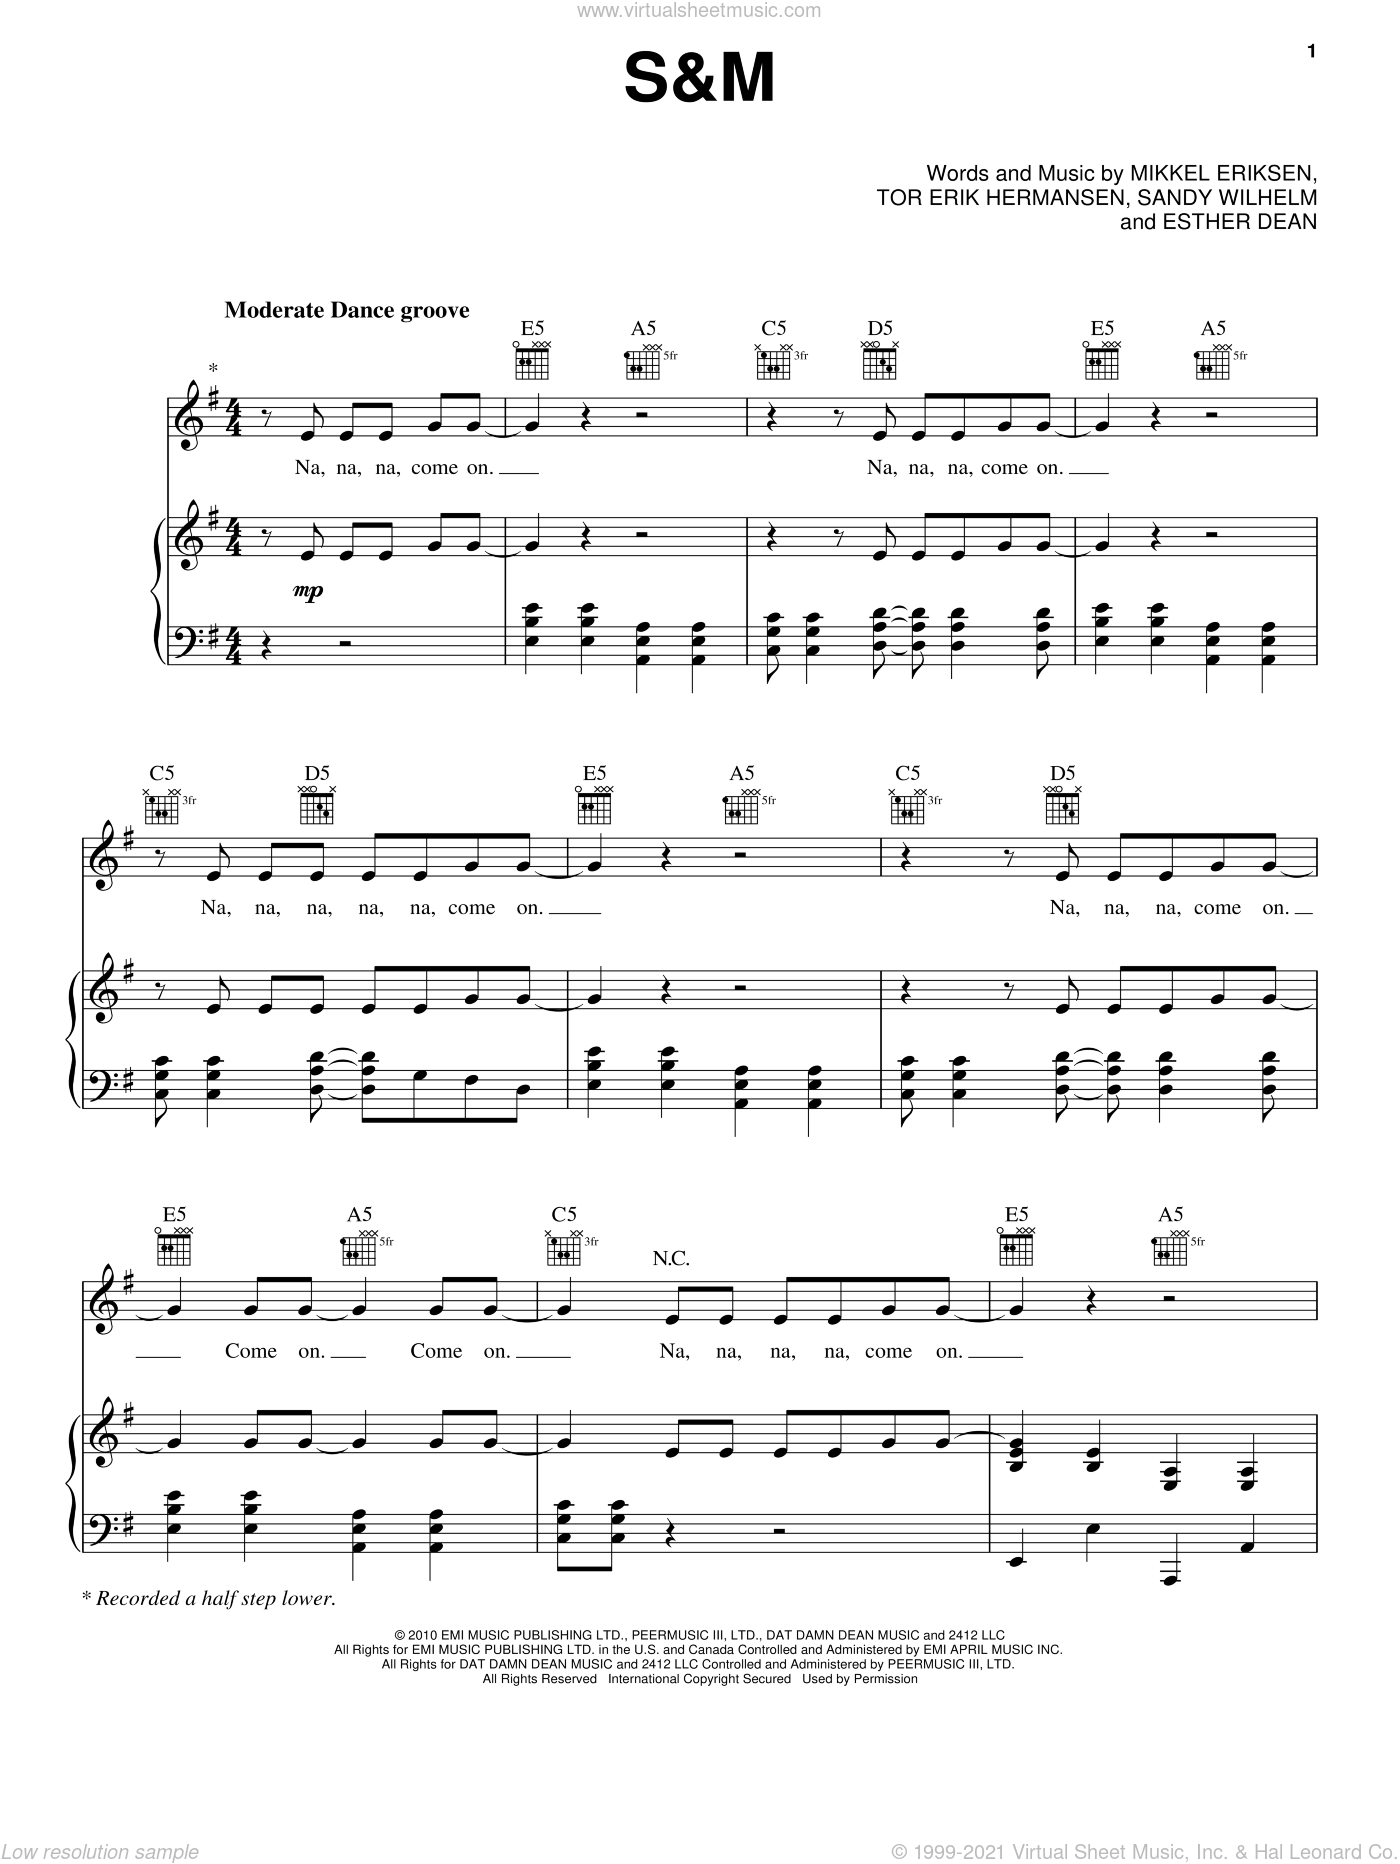 S&M sheet music for voice, piano or guitar by Tor Erik Hermansen, Rihanna, Ester Dean, Mikkel Eriksen and Sandy Wilhelm. Score Image Preview.